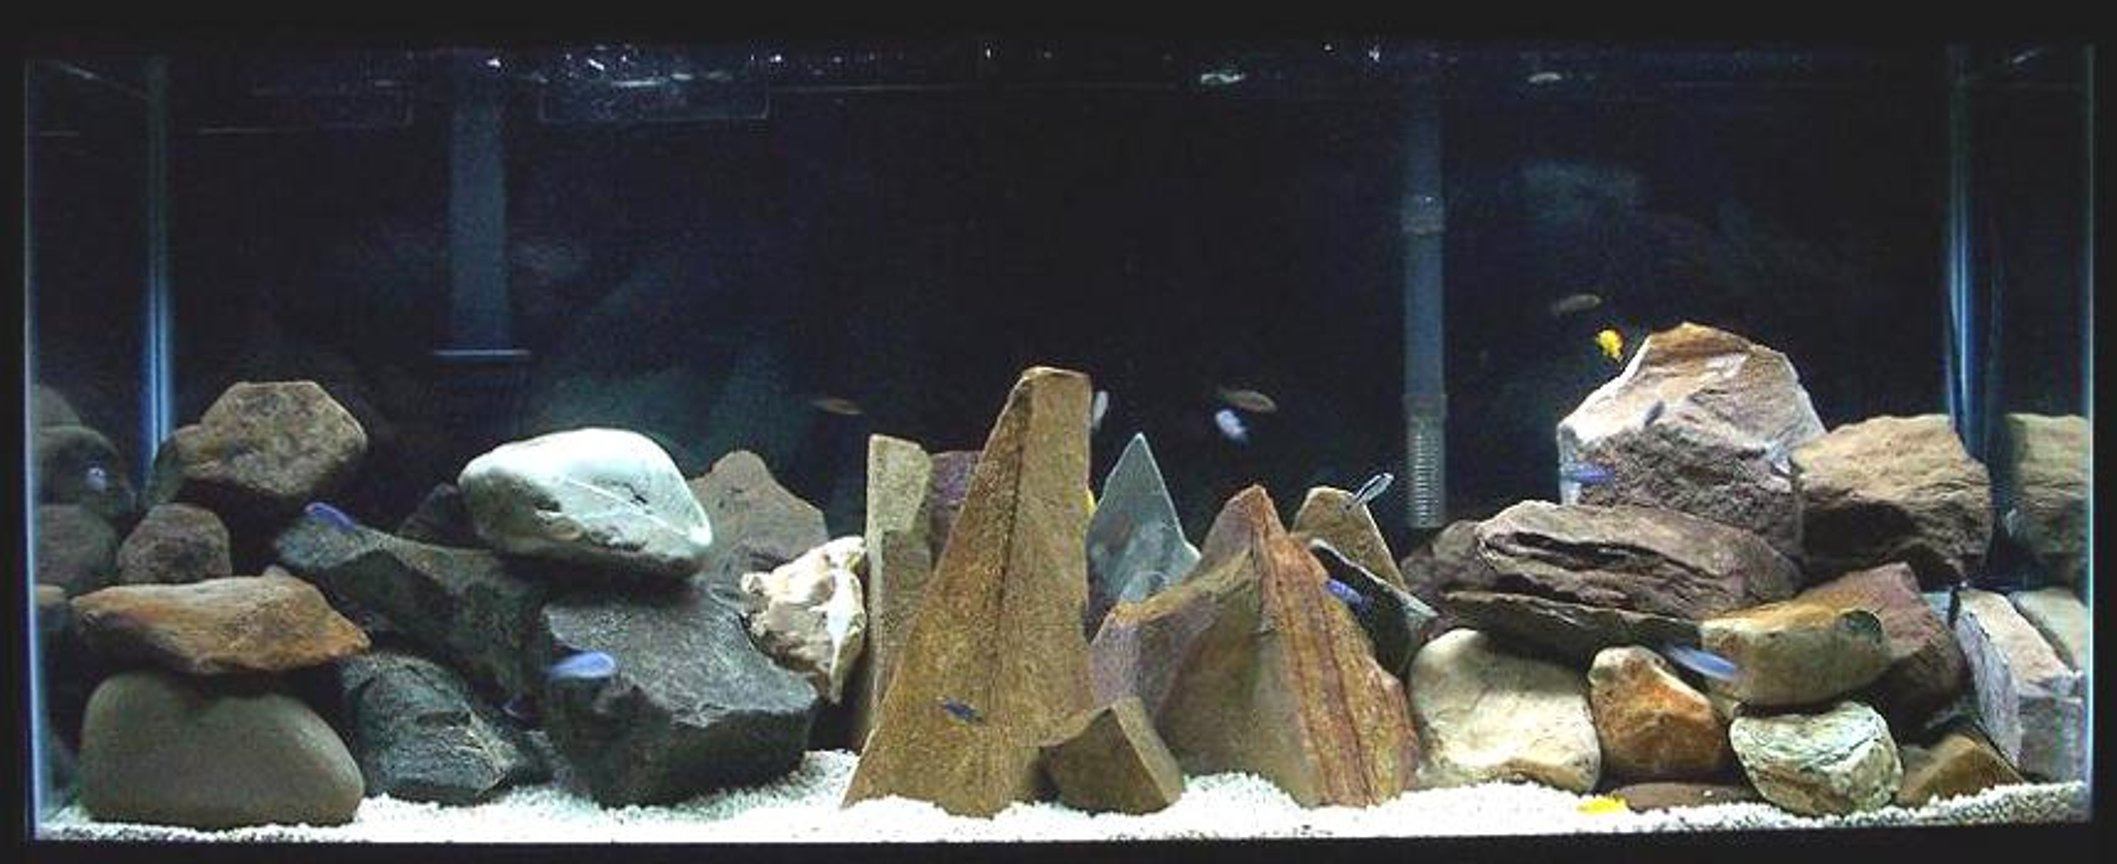 75 gallons freshwater fish tank (mostly fish and non-living decorations) - 55 gallon mbuna setup.